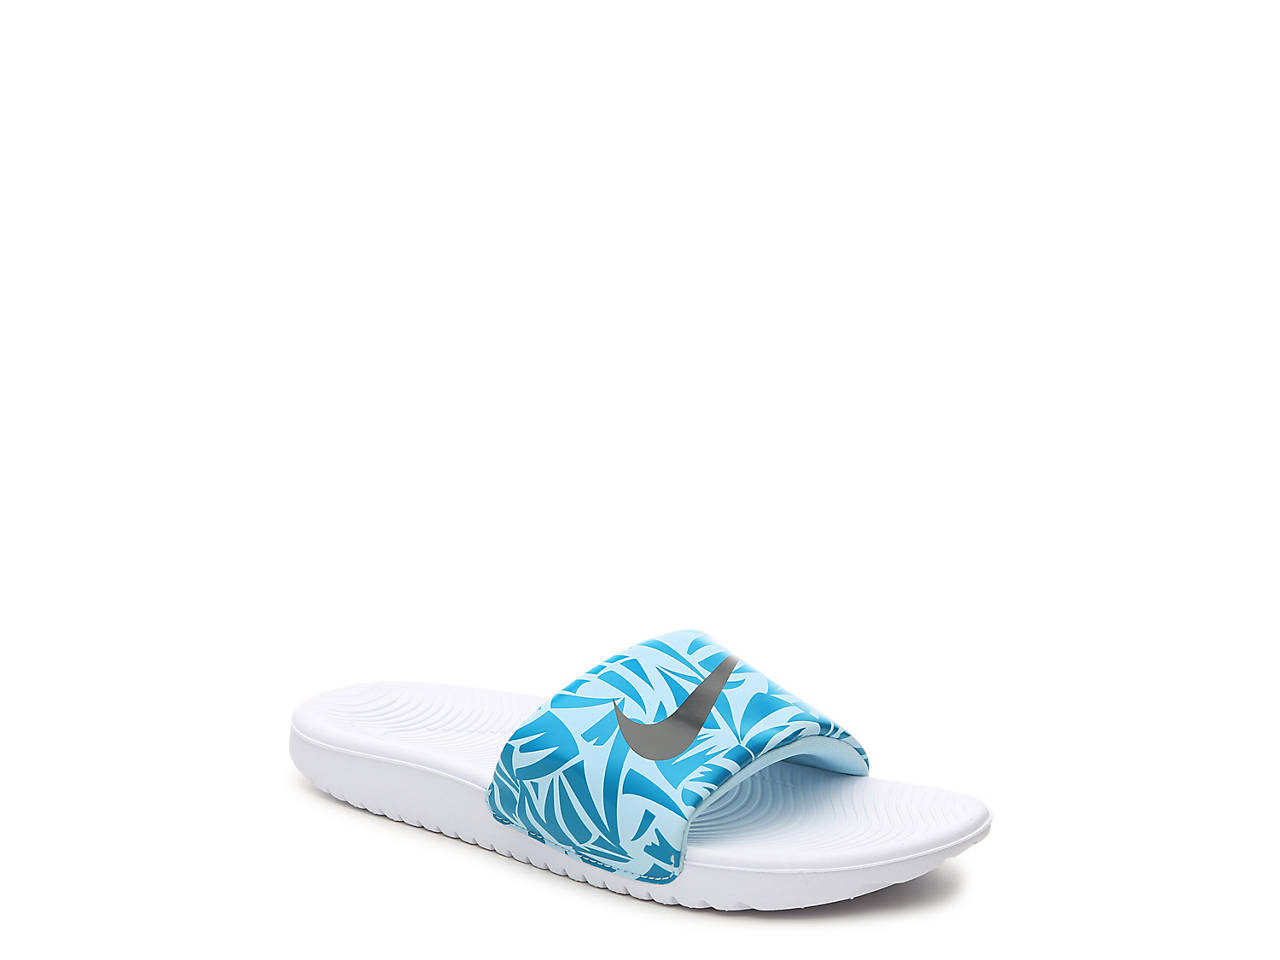 Nike Kawa Toddler   Youth Slide Sandal Kids Shoes